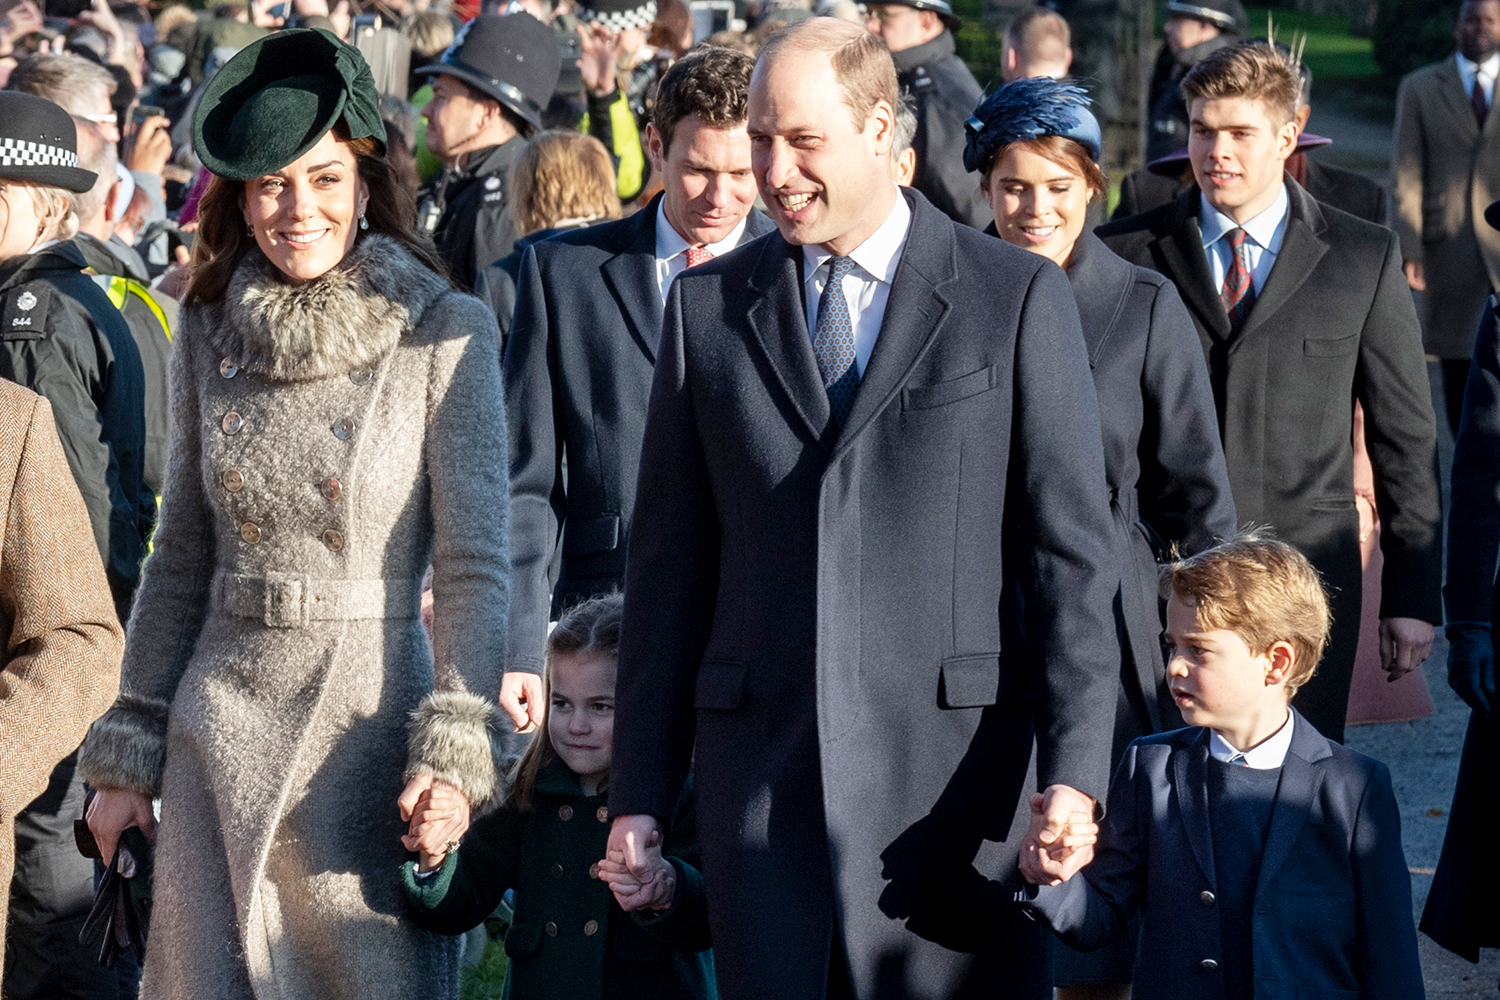 Duchess of Cambridge and Prince William, Duke of Cambridge with Prince George of Cambridge and Princess Charlotte of Cambridge attend the Christmas Day Church service at Church of St Mary Magdalene on the Sandringham estate on December 25, 2019 in King's Lynn, United Kingdom